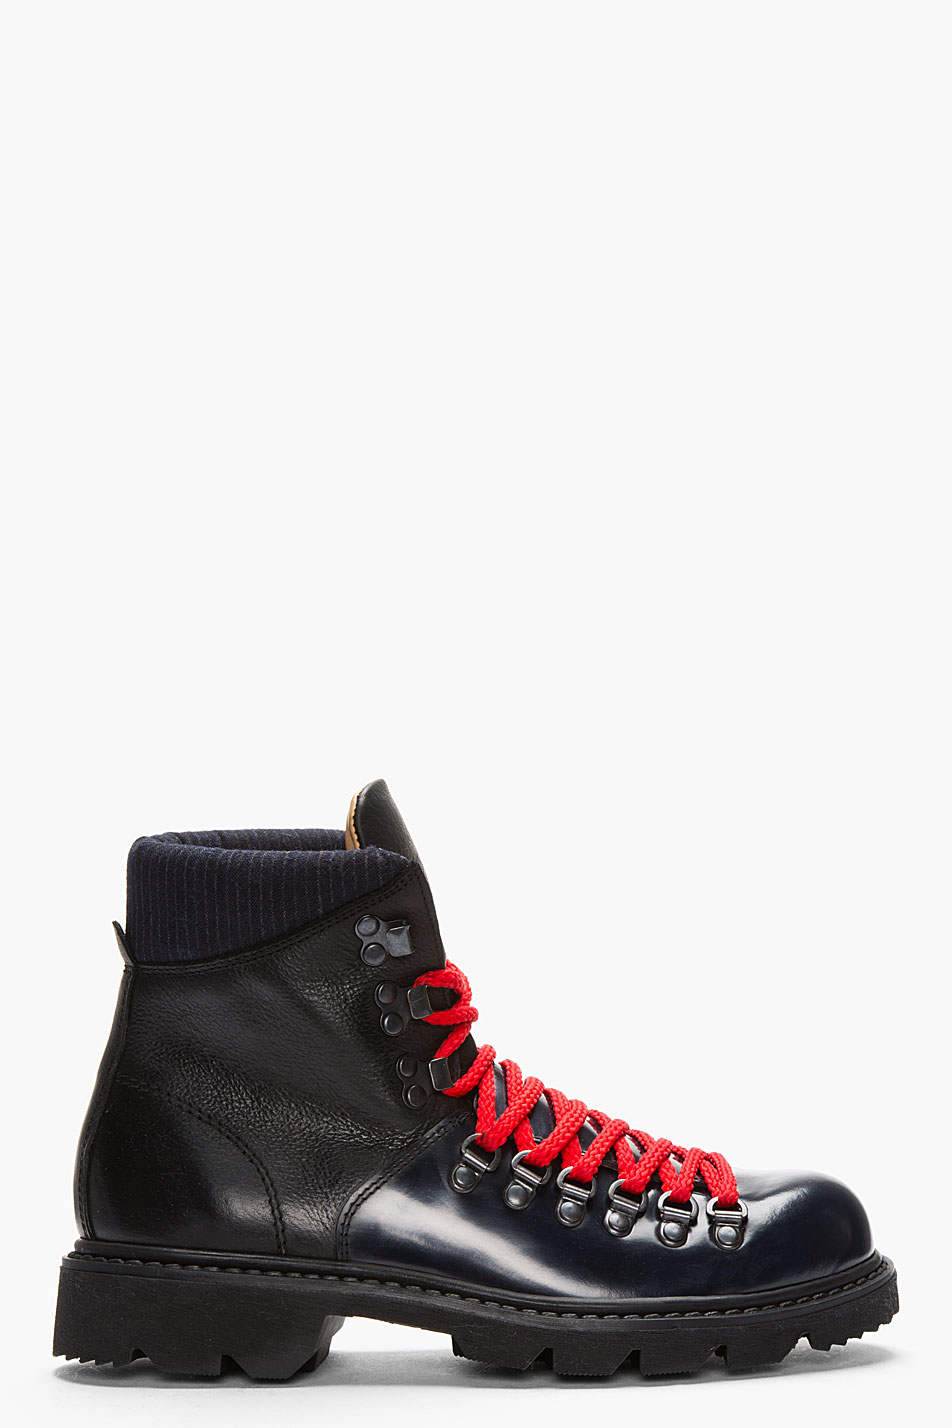 Carven Black Leather Hiking Boots in Black for Men | Lyst